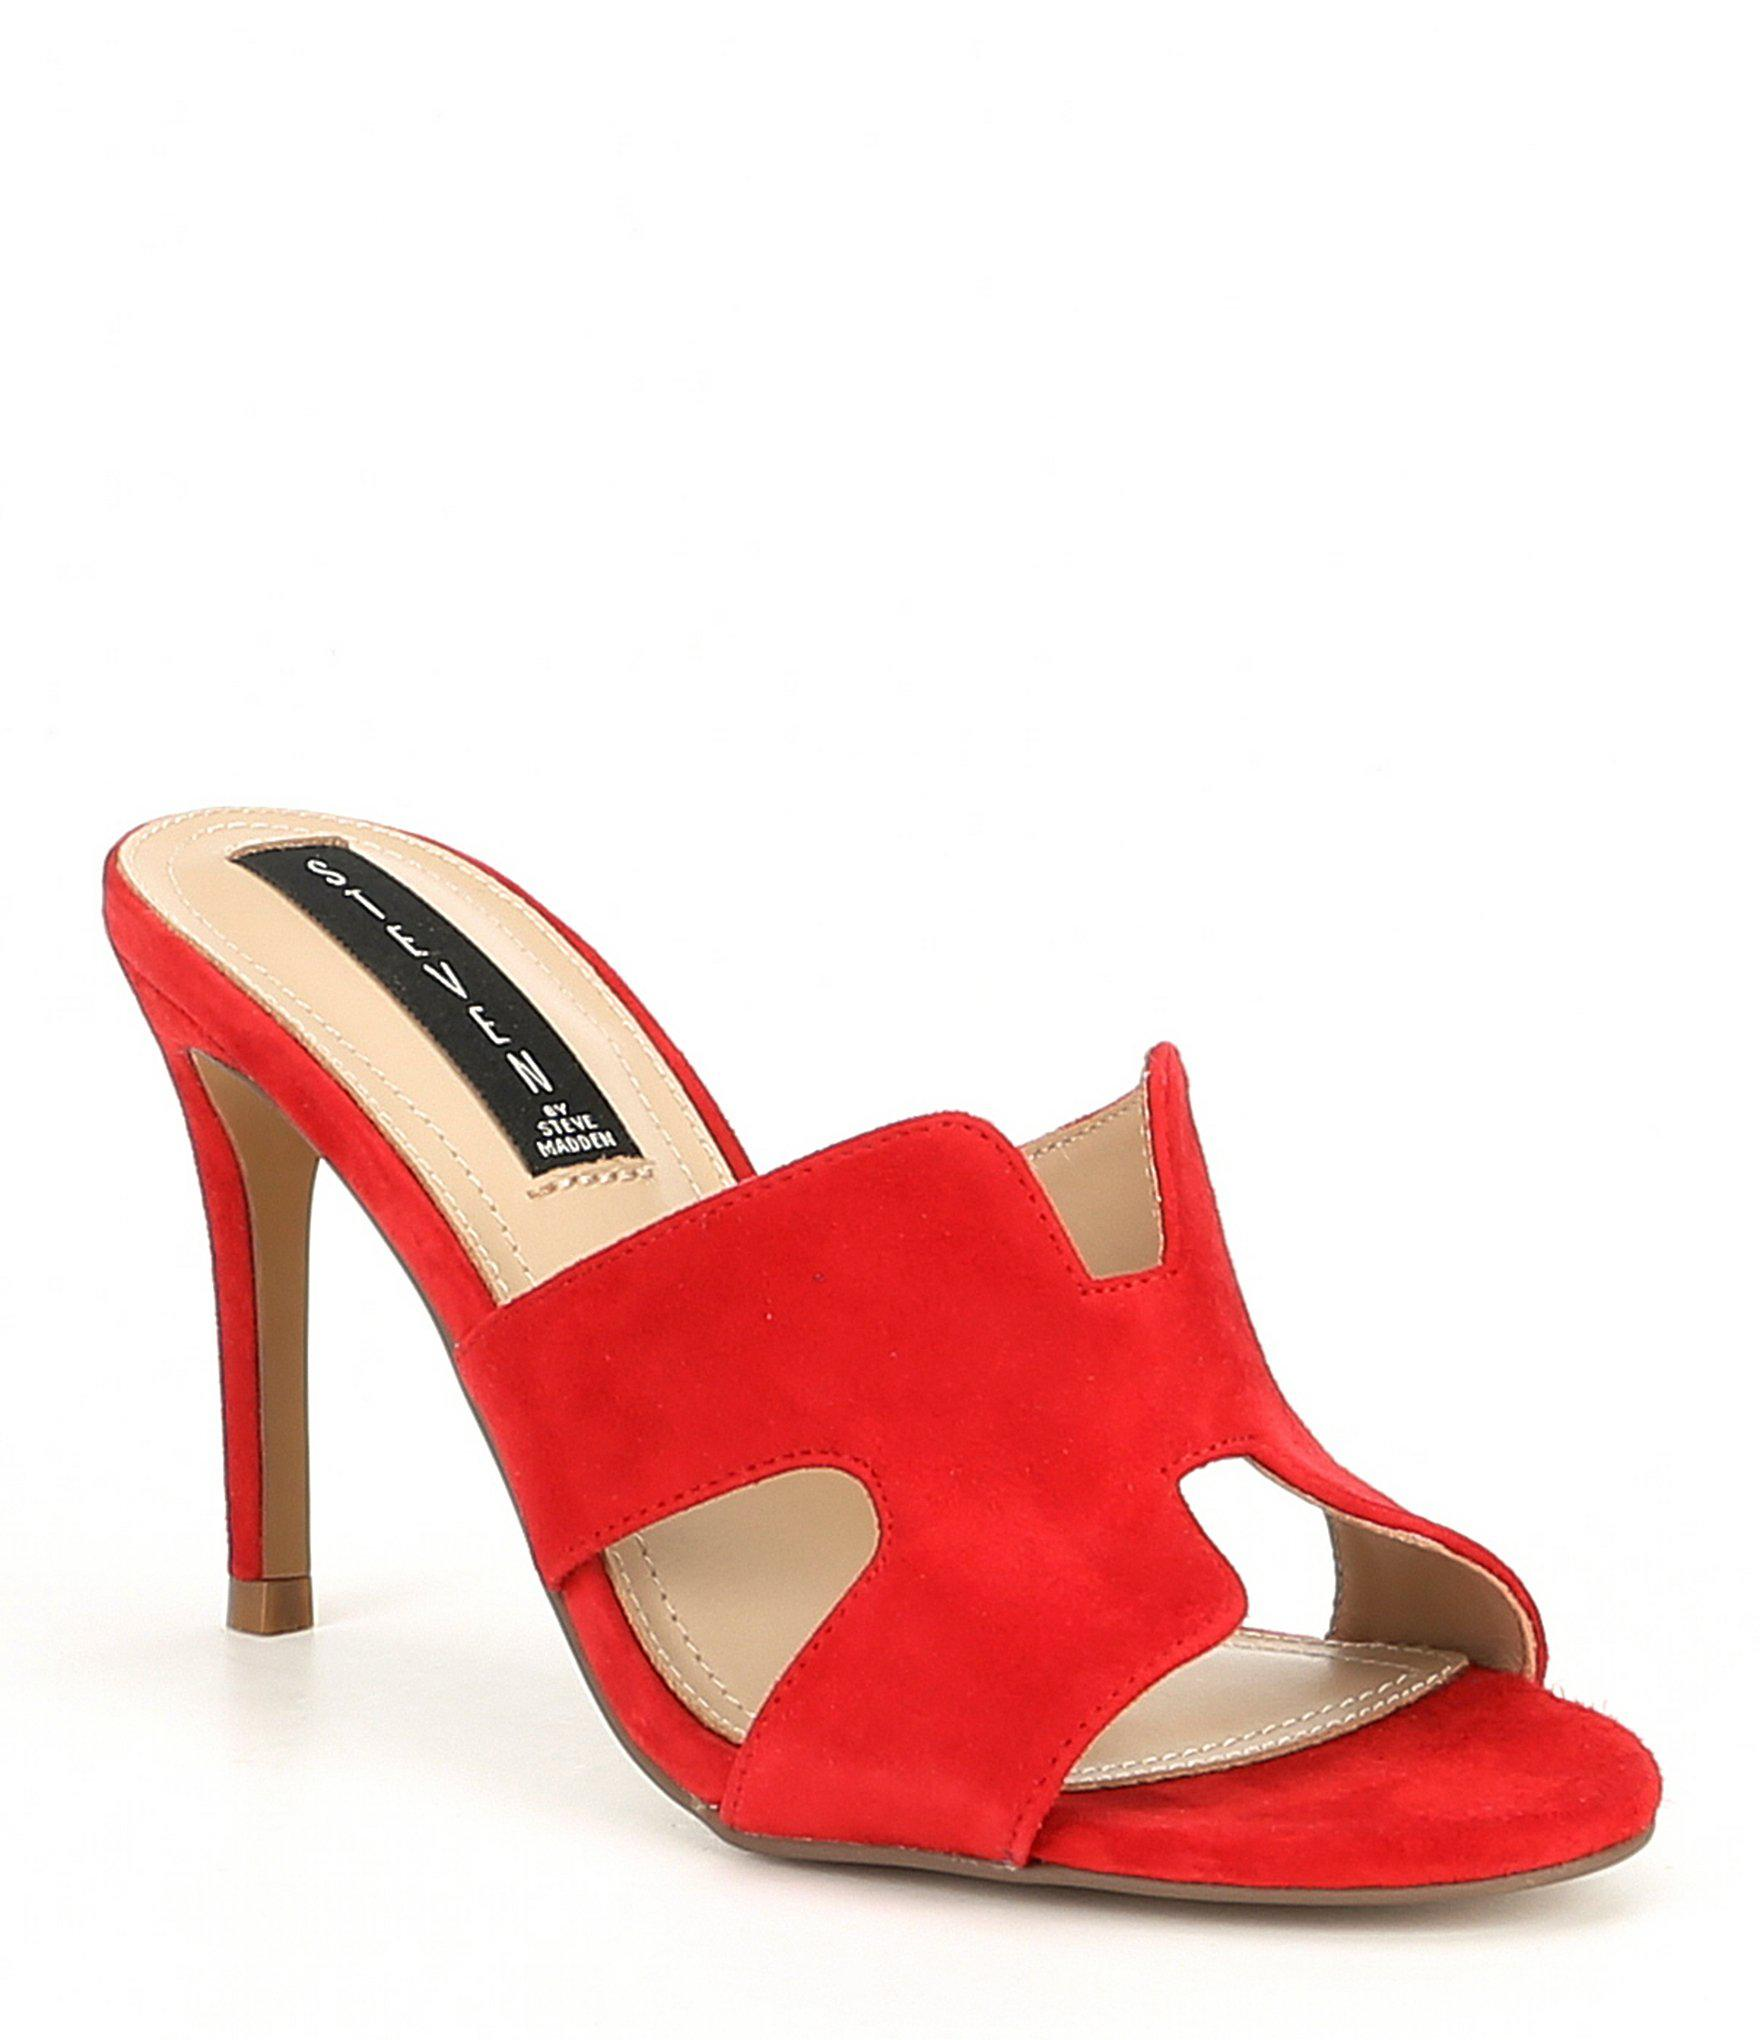 b02e785403 Lyst - Steve Madden Steven By Nylah Suede Stiletto Pumps in Red